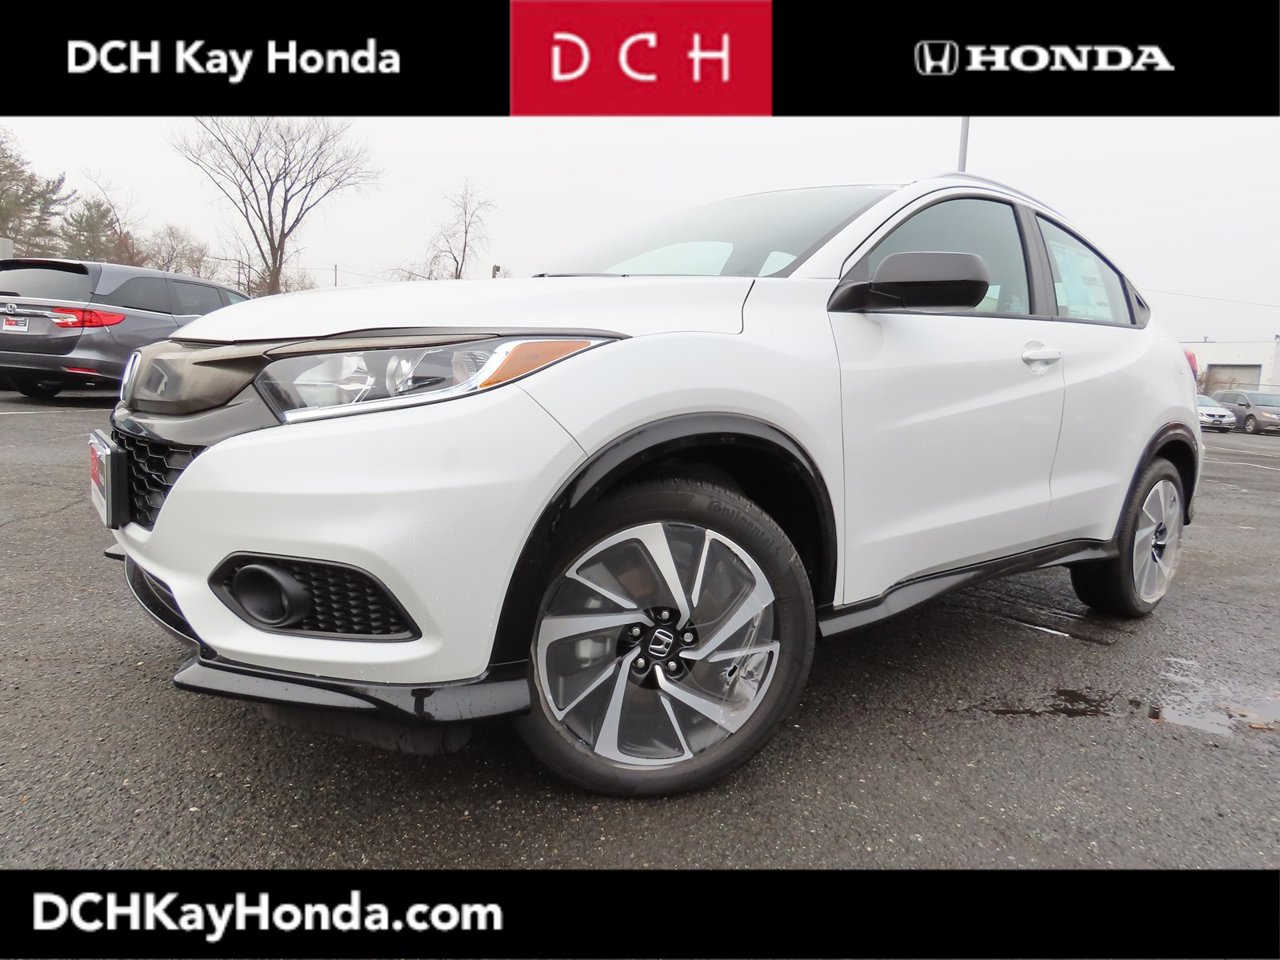 New 2020 Honda HR-V in Eatontown, NJ